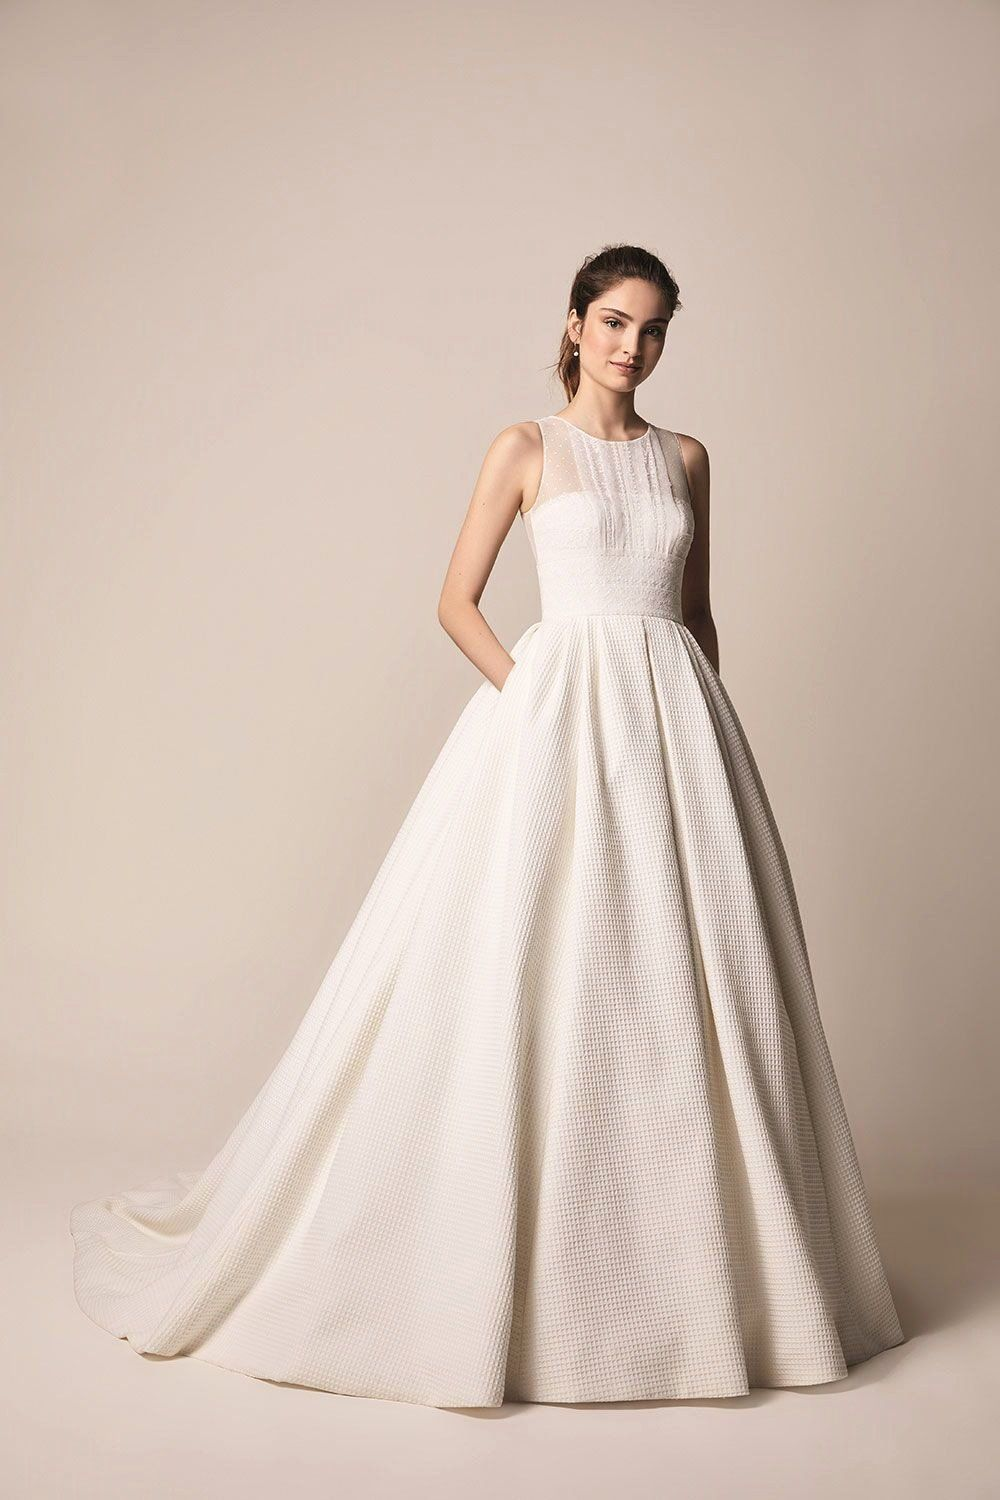 Spanish Style Wedding Dress Designers in 2020 Wedding